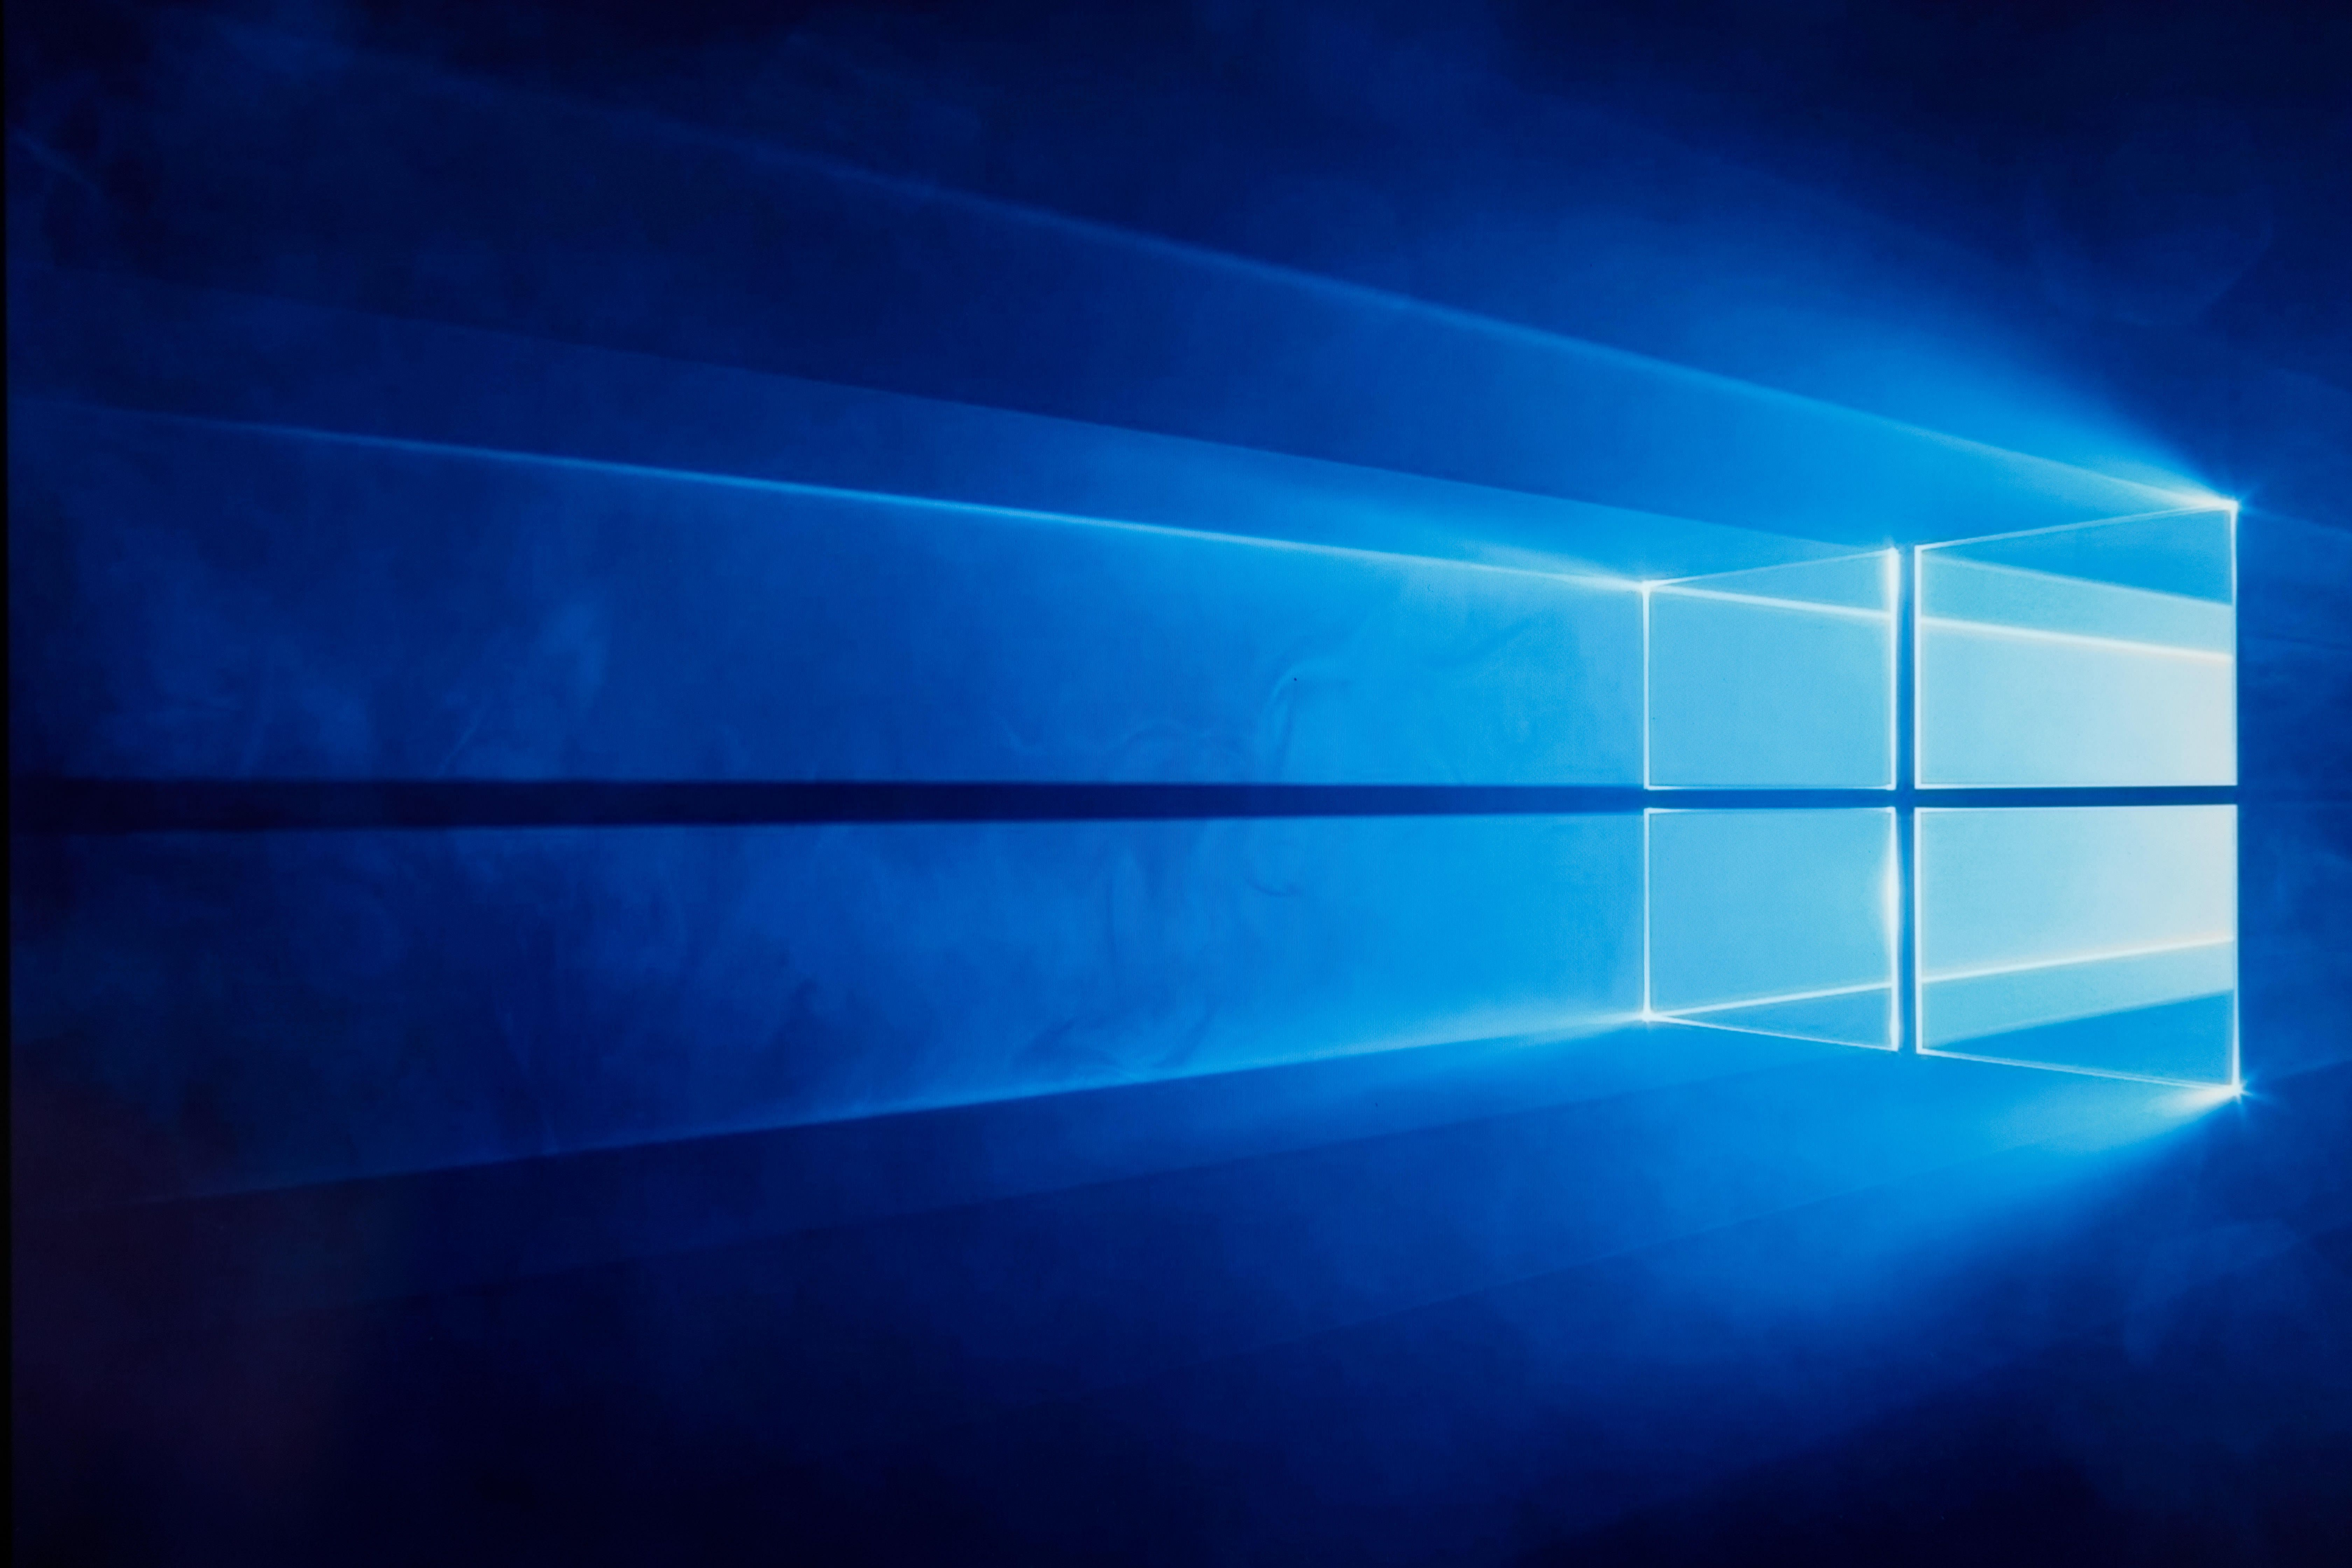 Upgrade To Windows 10 For Free Right Now In 2020 Upgrade To